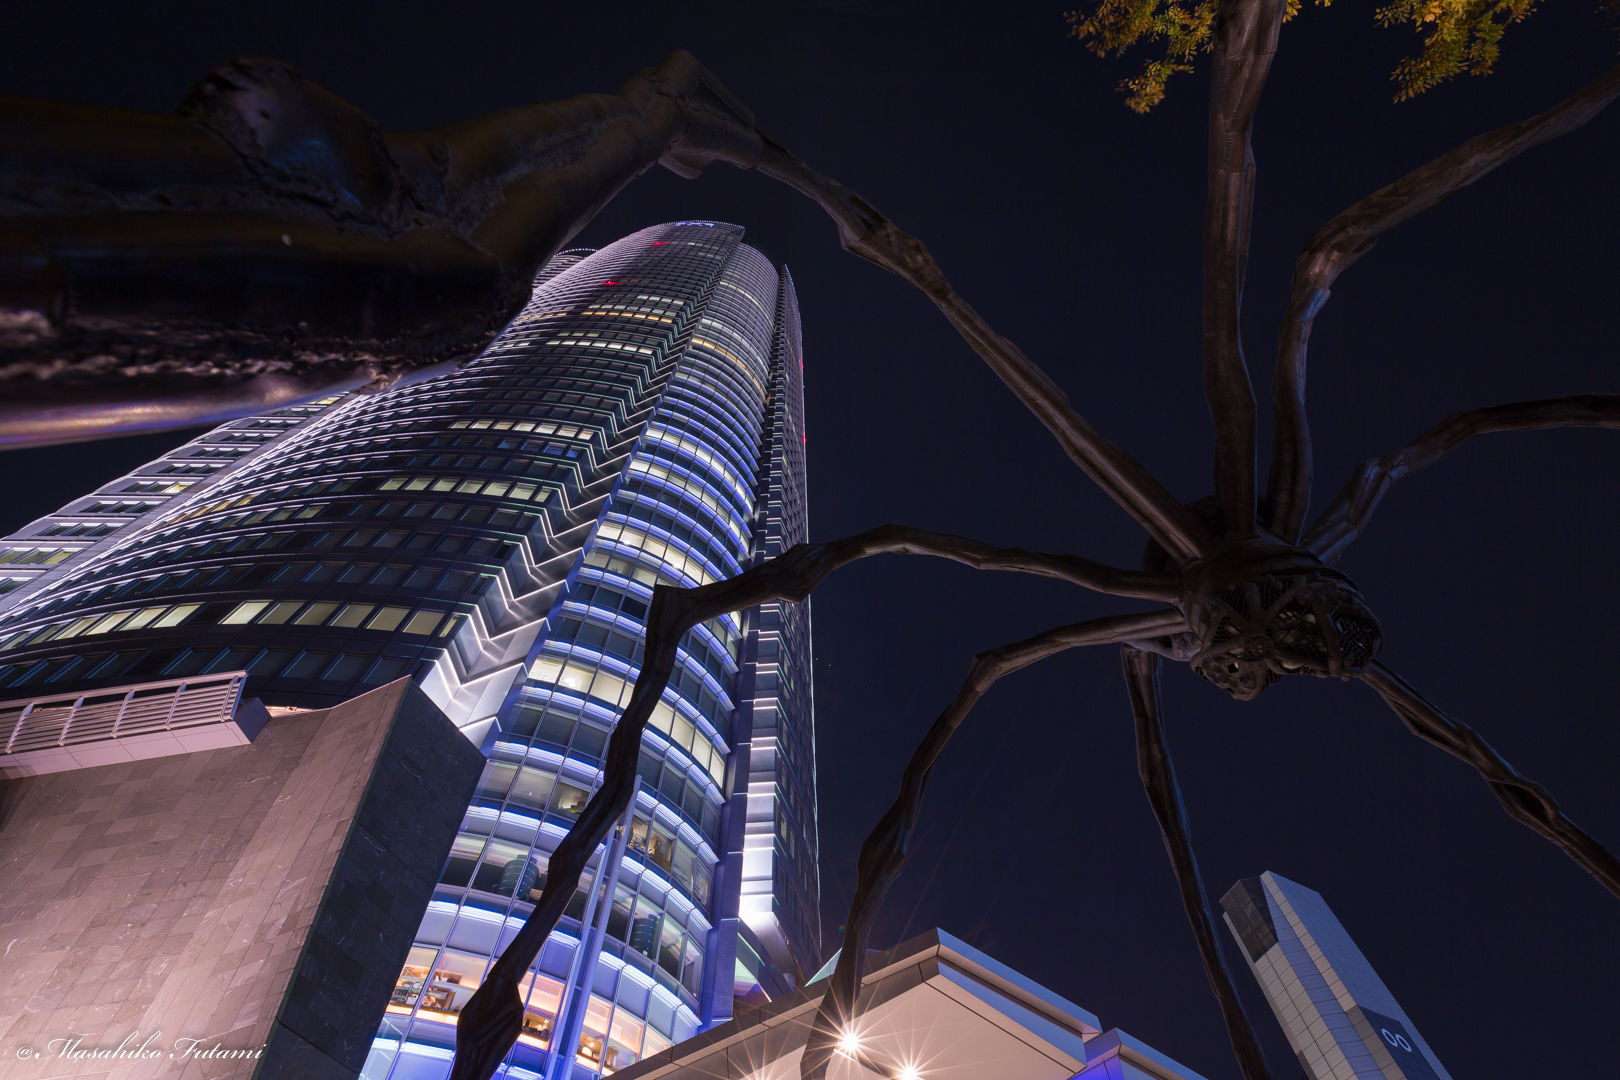 The Spider at Roppongi Hills